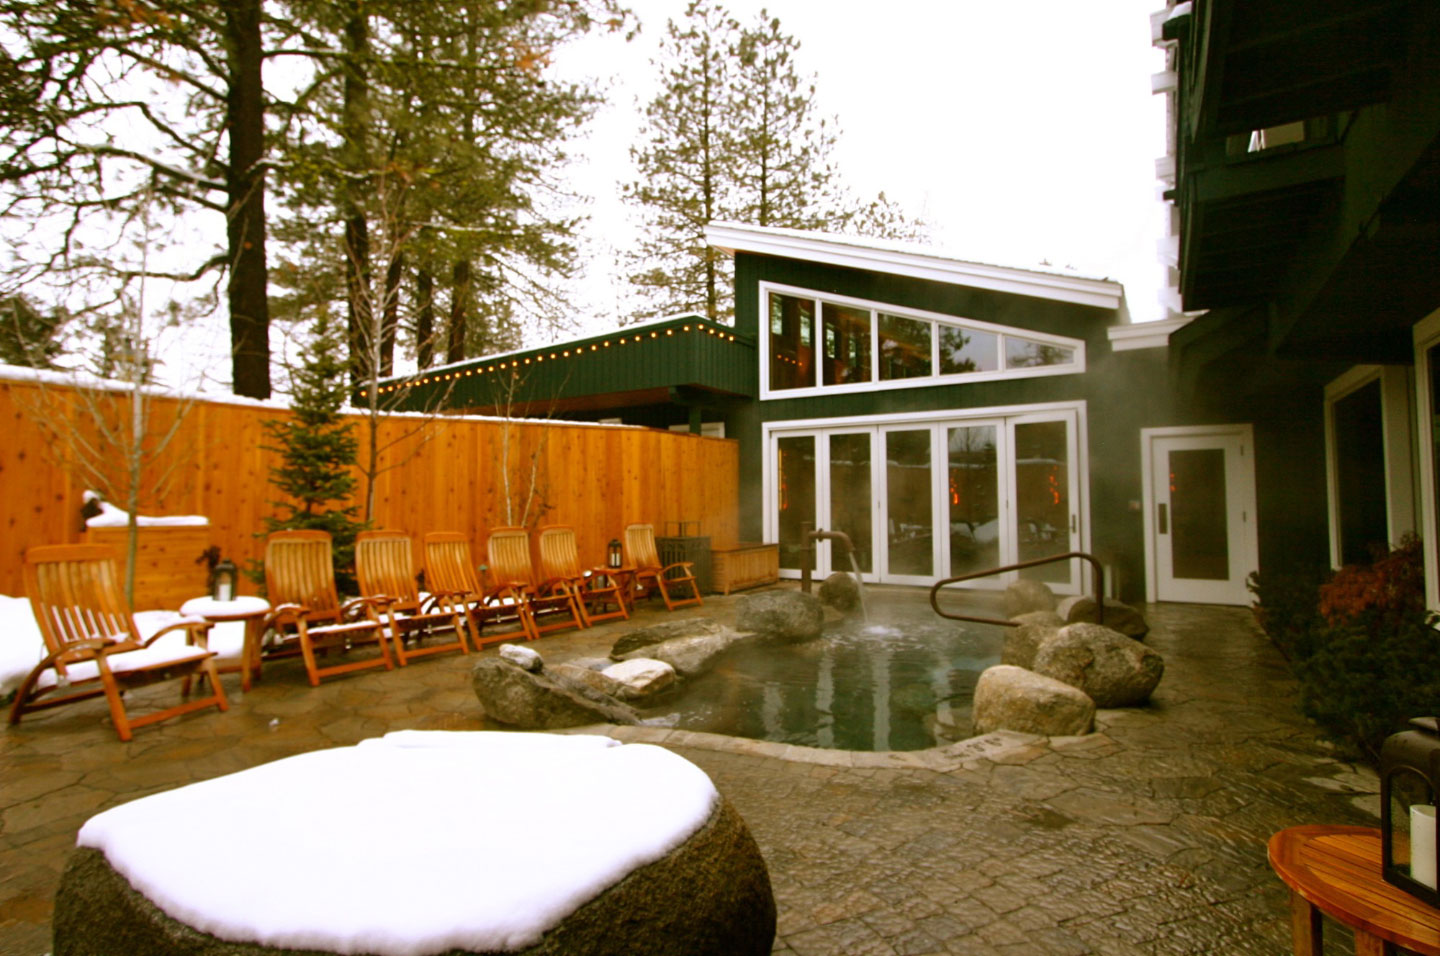 THE COVE SPA AT SHORE LODGE